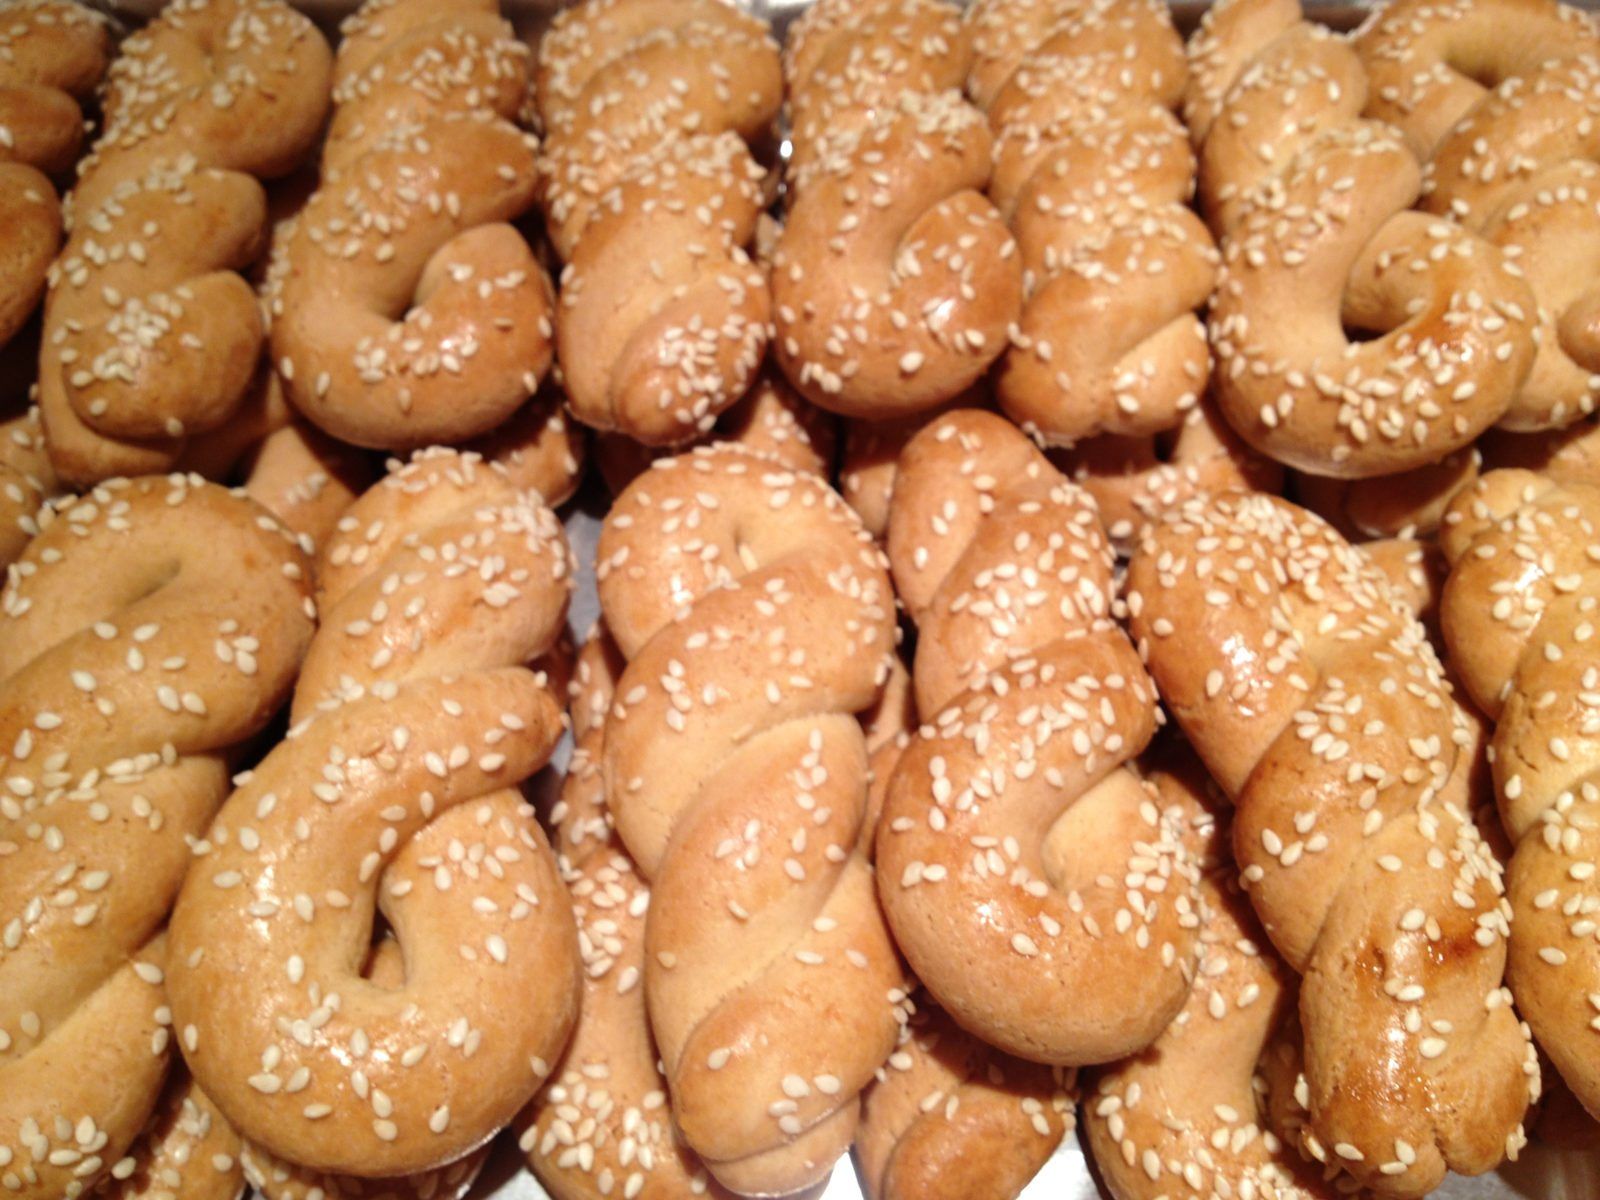 ... are traditional twisted butter cookies 1 pound or about 16 18 cookies